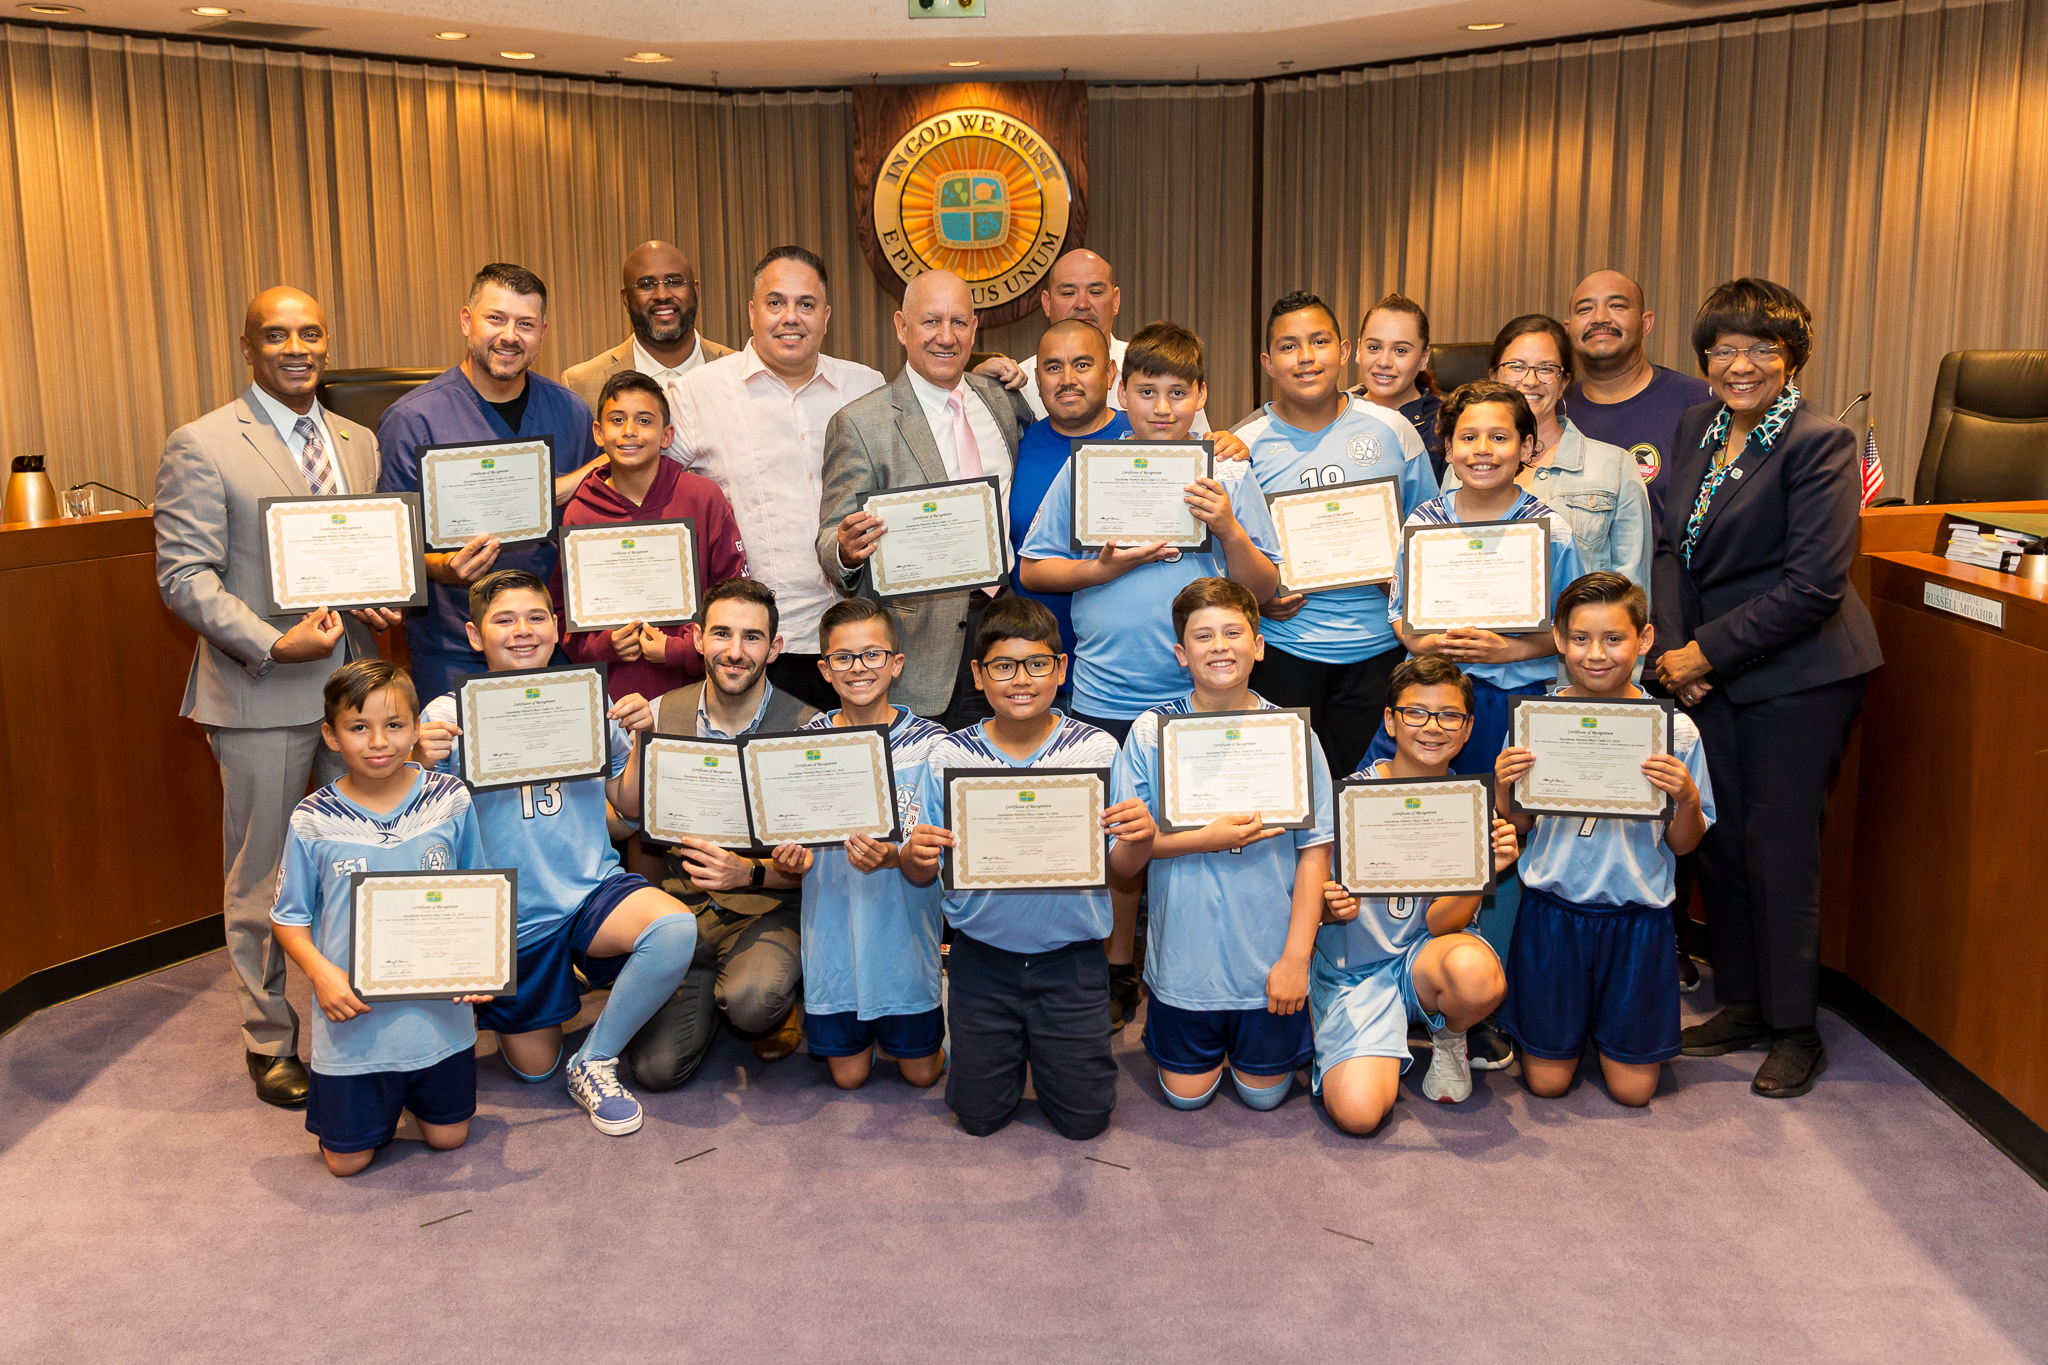 Hawthorne Warriors soccer team and council